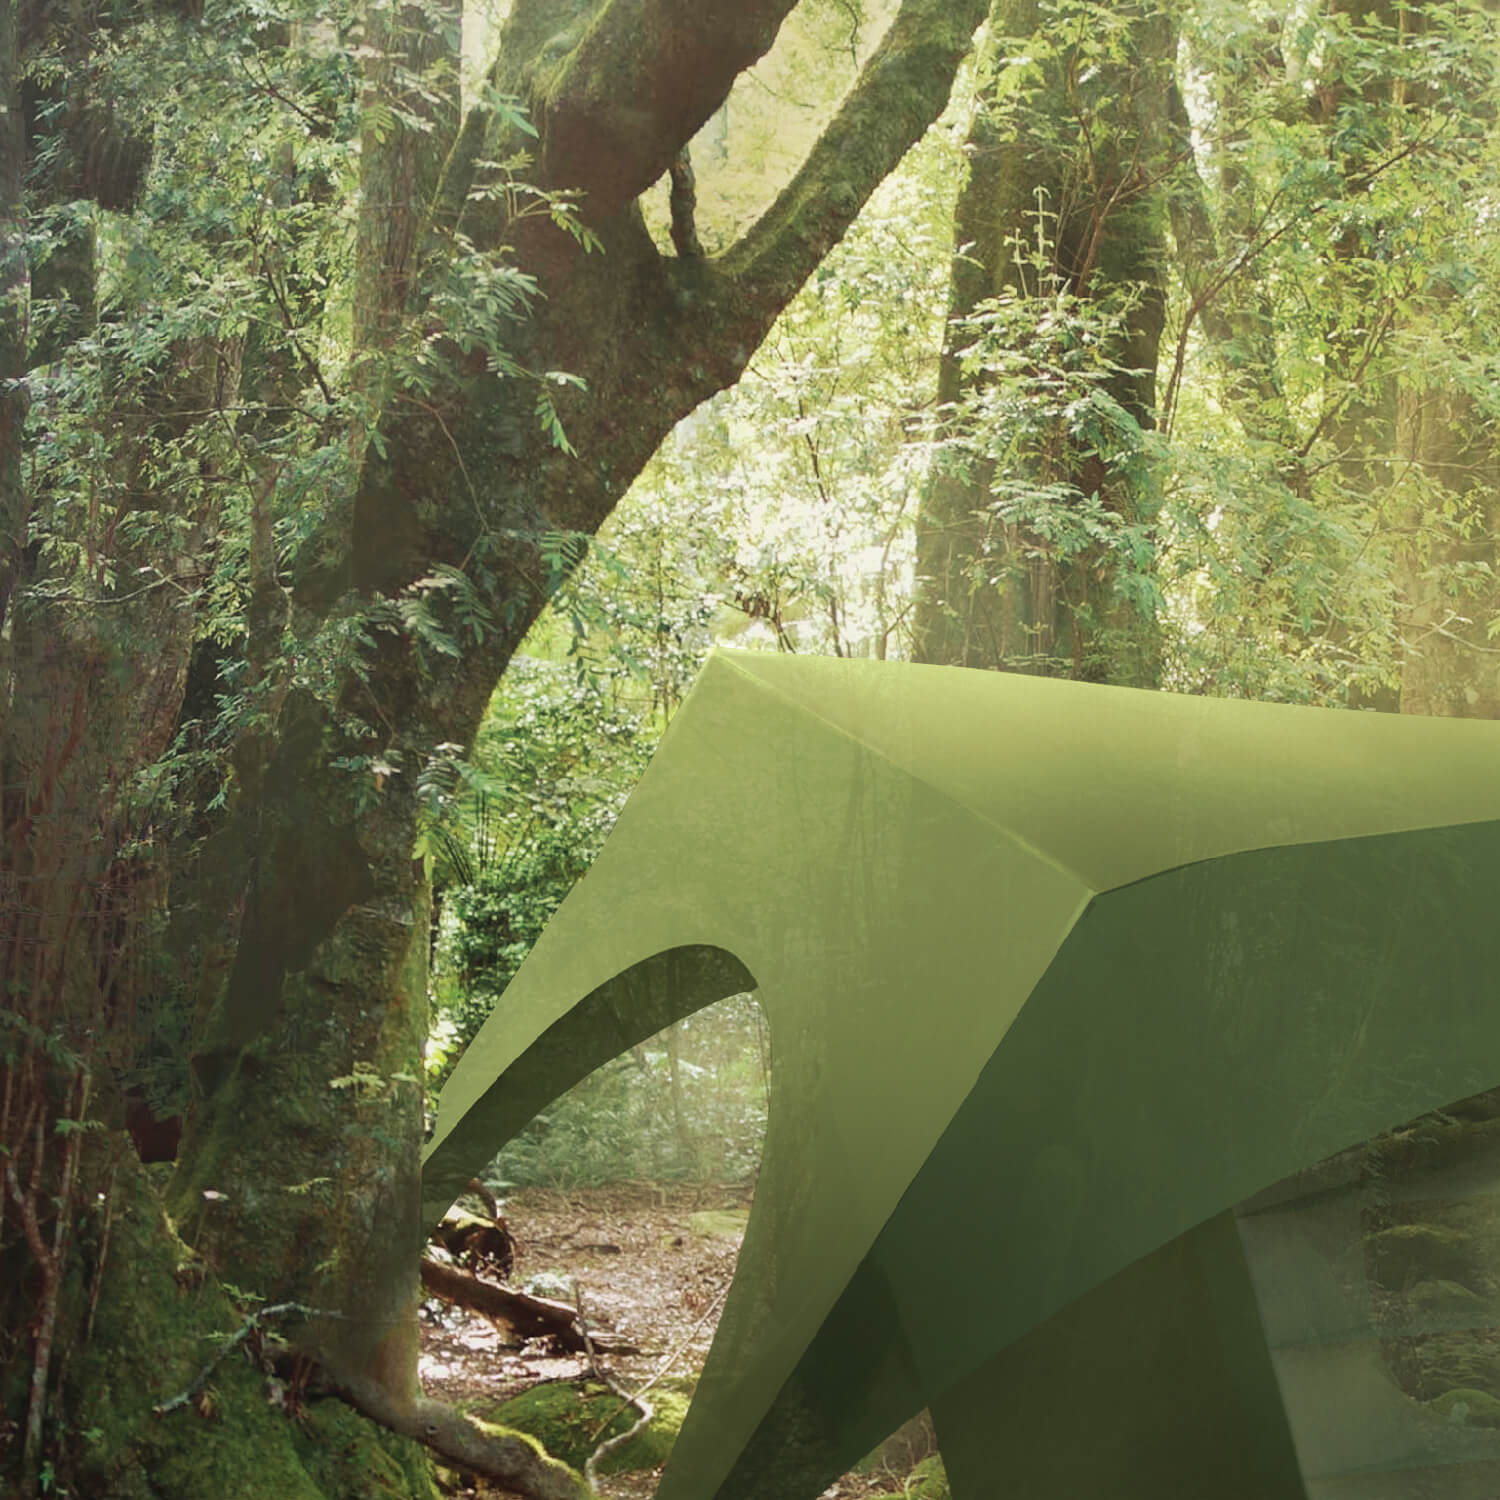 …that return to the earth - (Compostable Architecture)